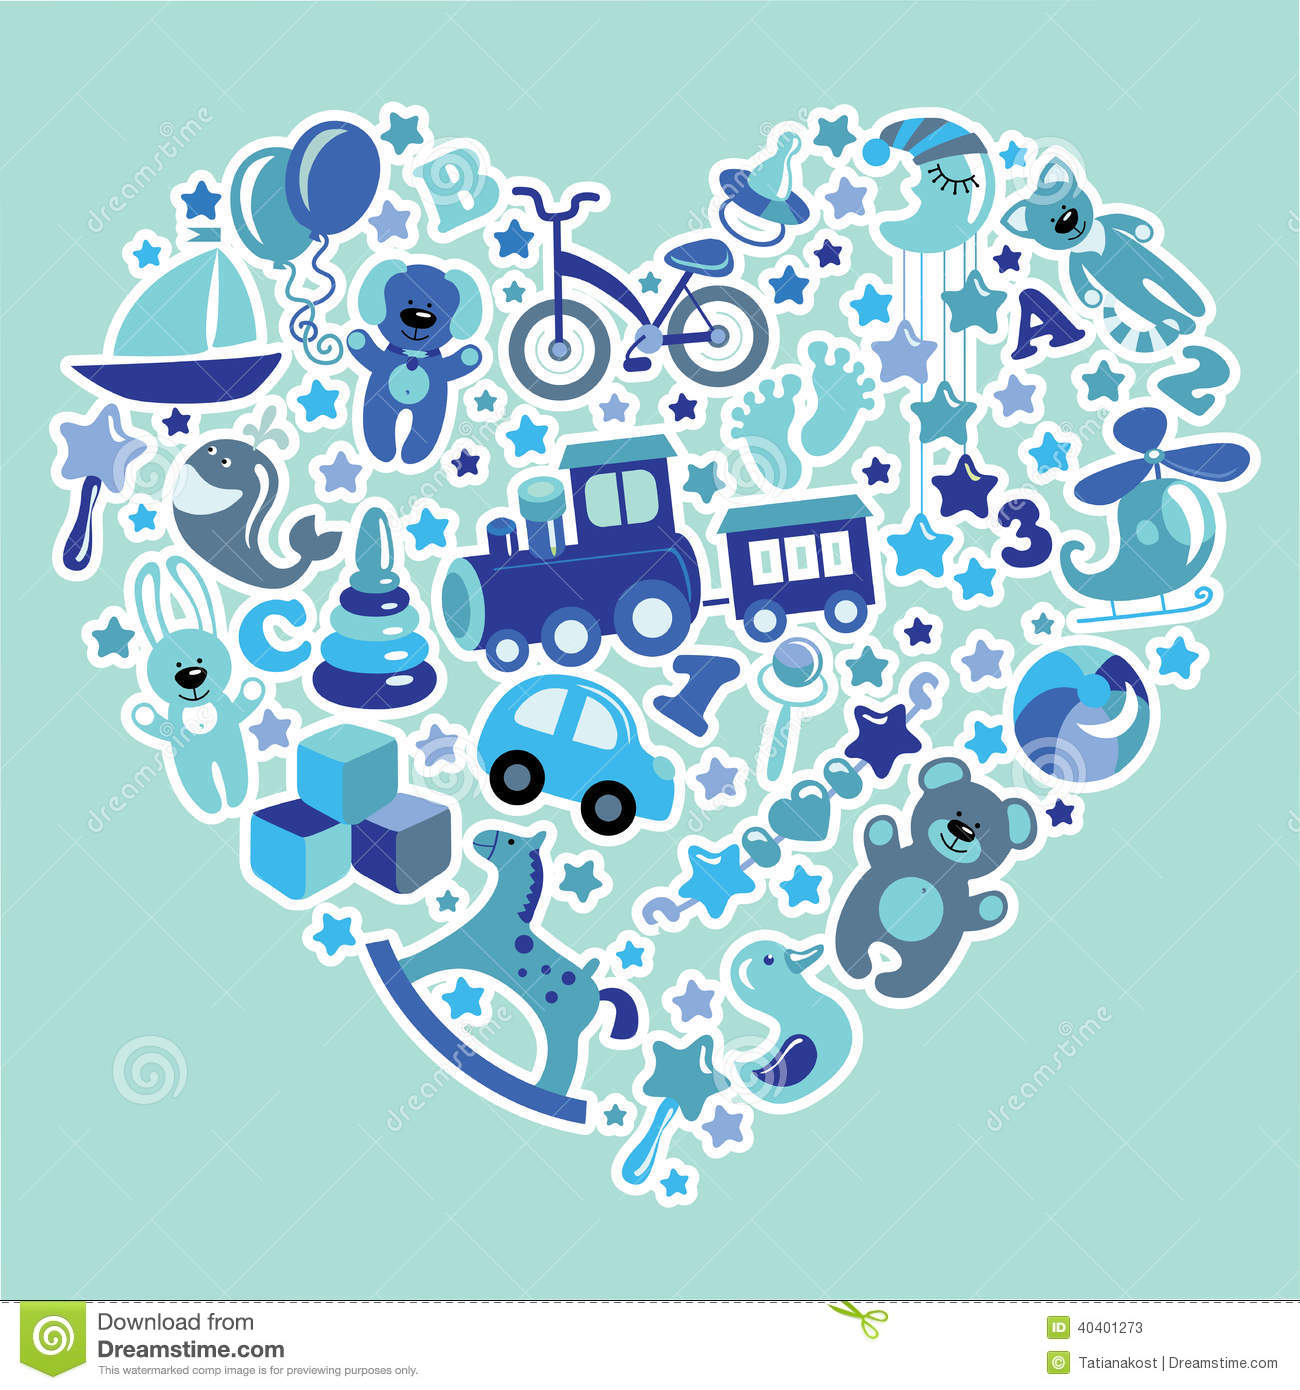 Sweet twins royalty free stock photo image 10320675 - Toys Icons For Baby Boy In Heart Blue Colors Stock Vector Thumbs Dreamstime Com Sweet Twins Royalty Free